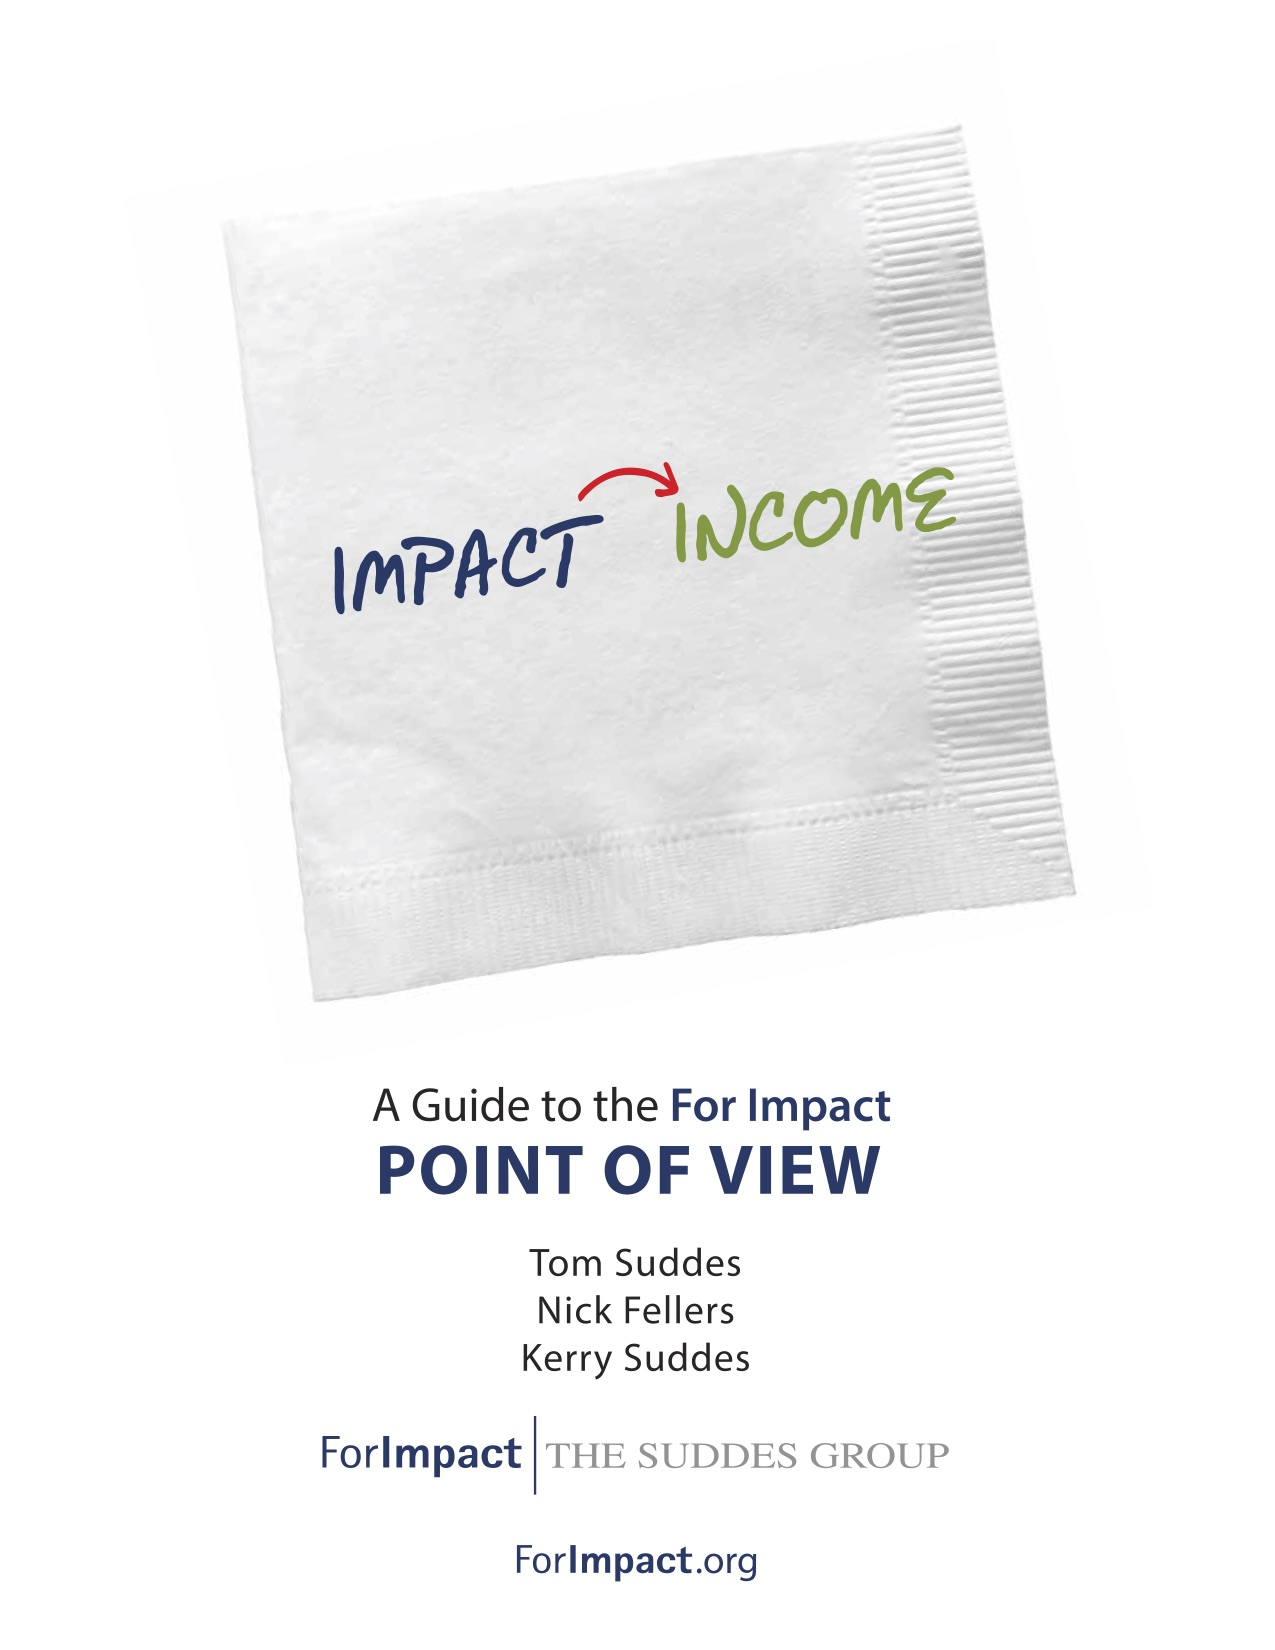 A Guide to the For Impact Point of View